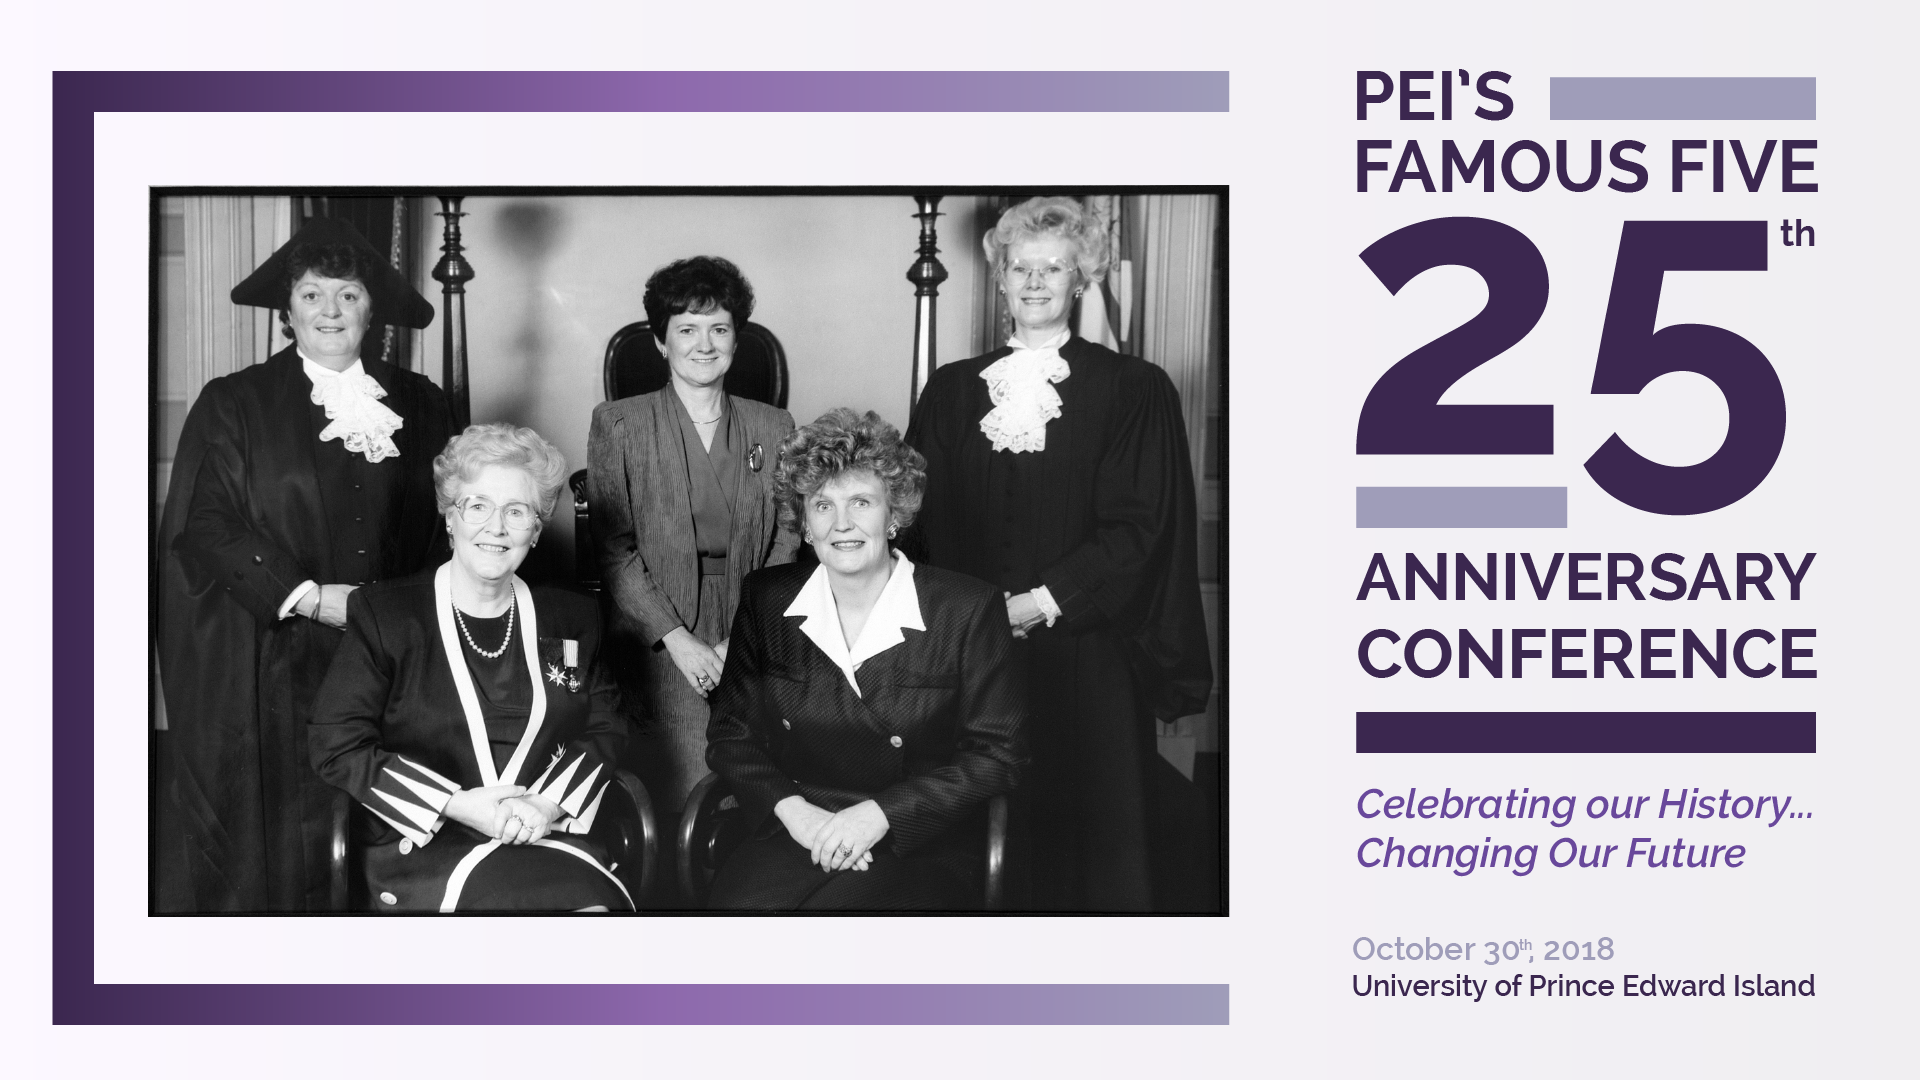 PEI's Famous Five 25th Anniversary Conference